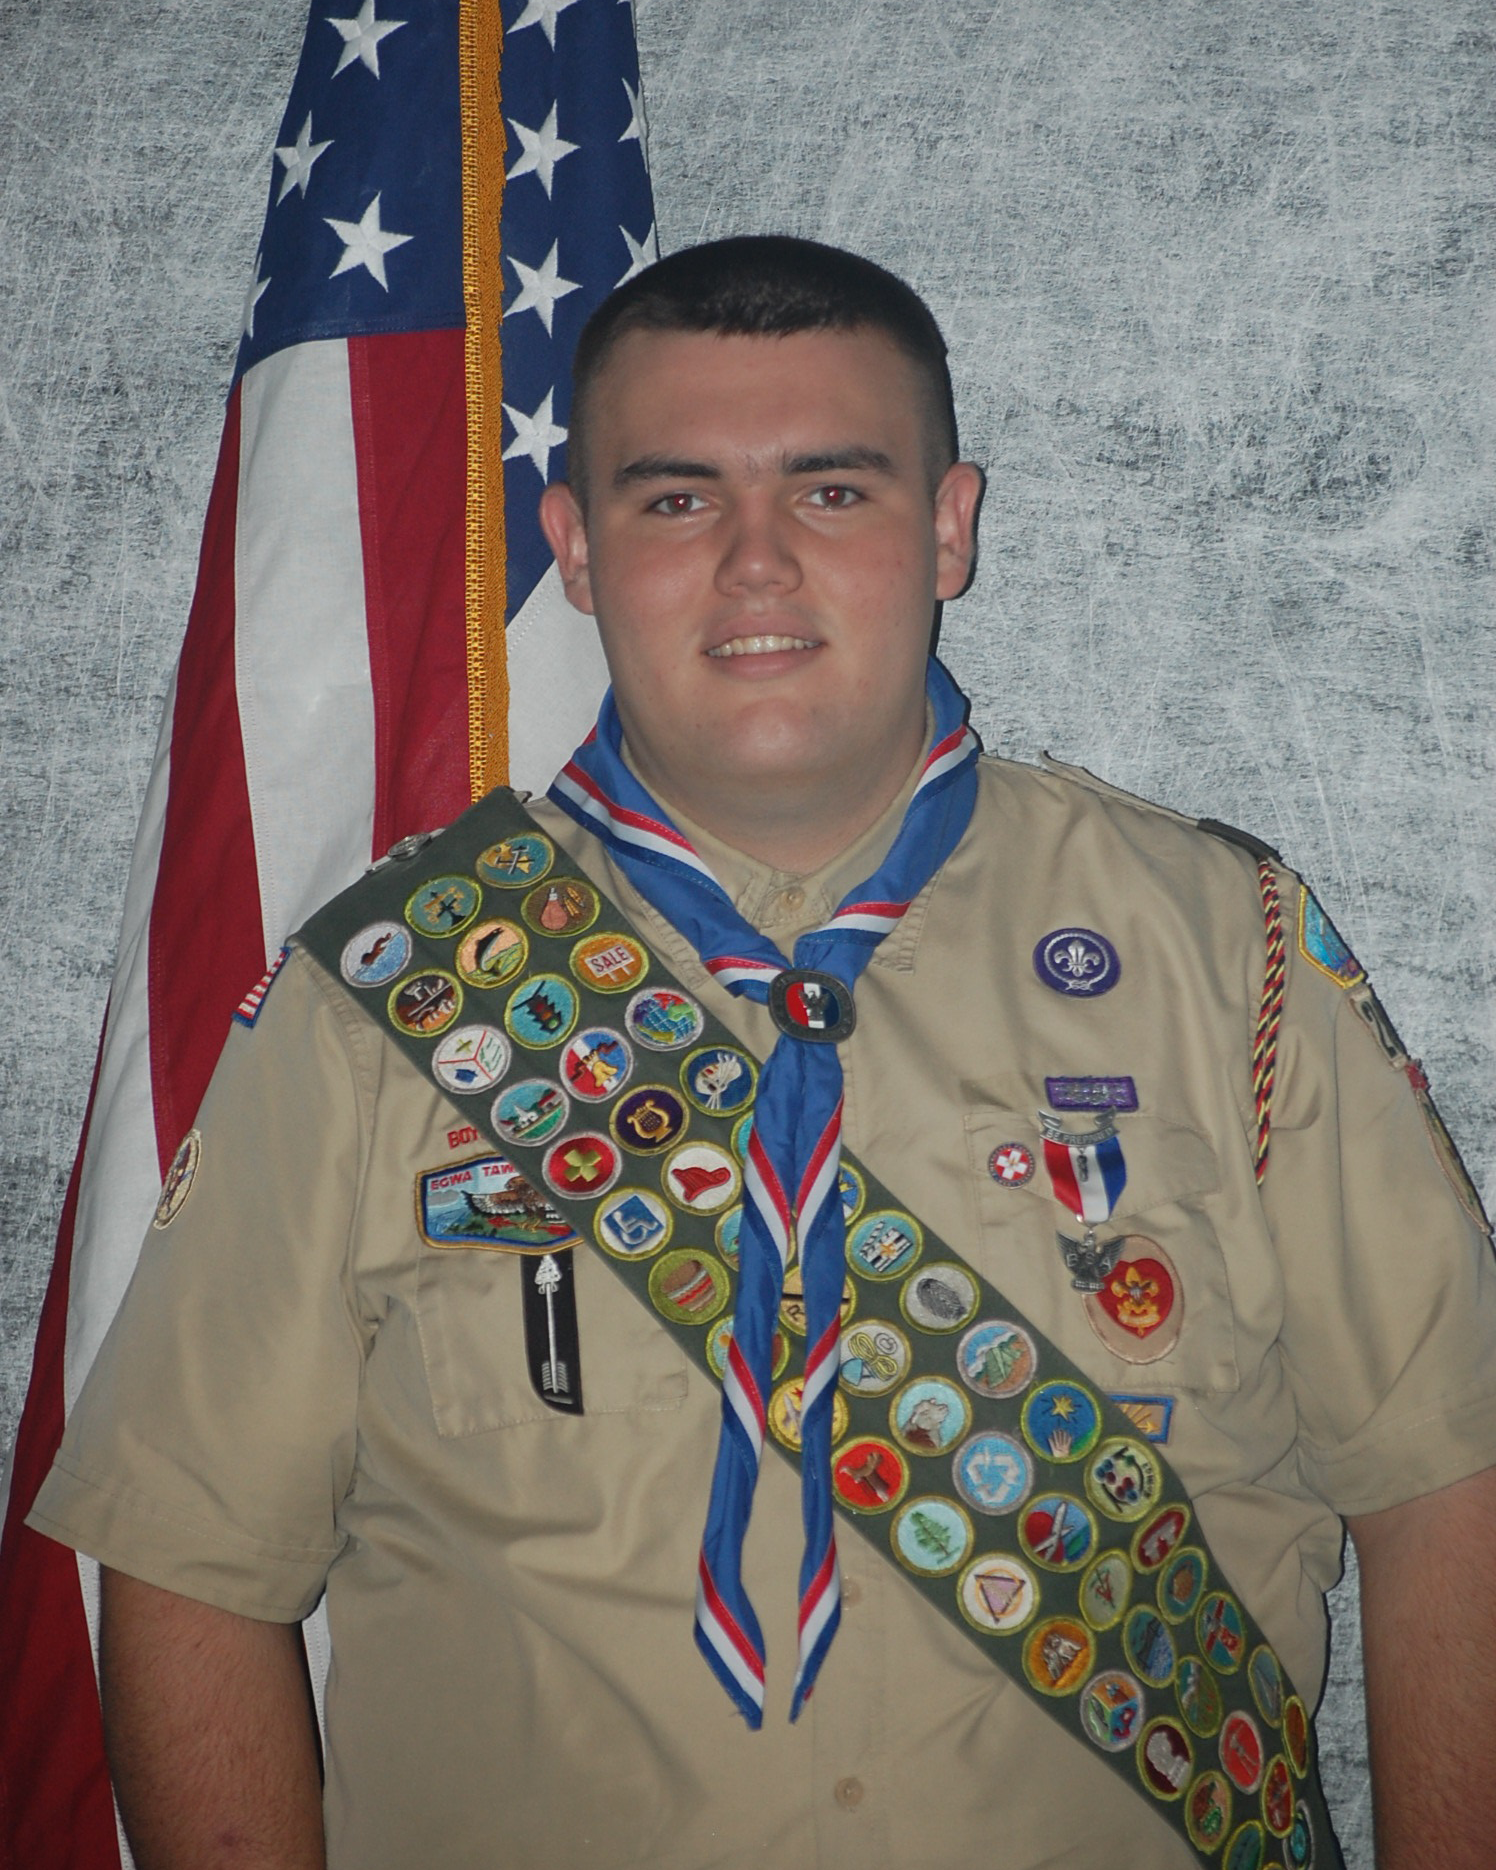 Malachi becomes and Eagle Scout